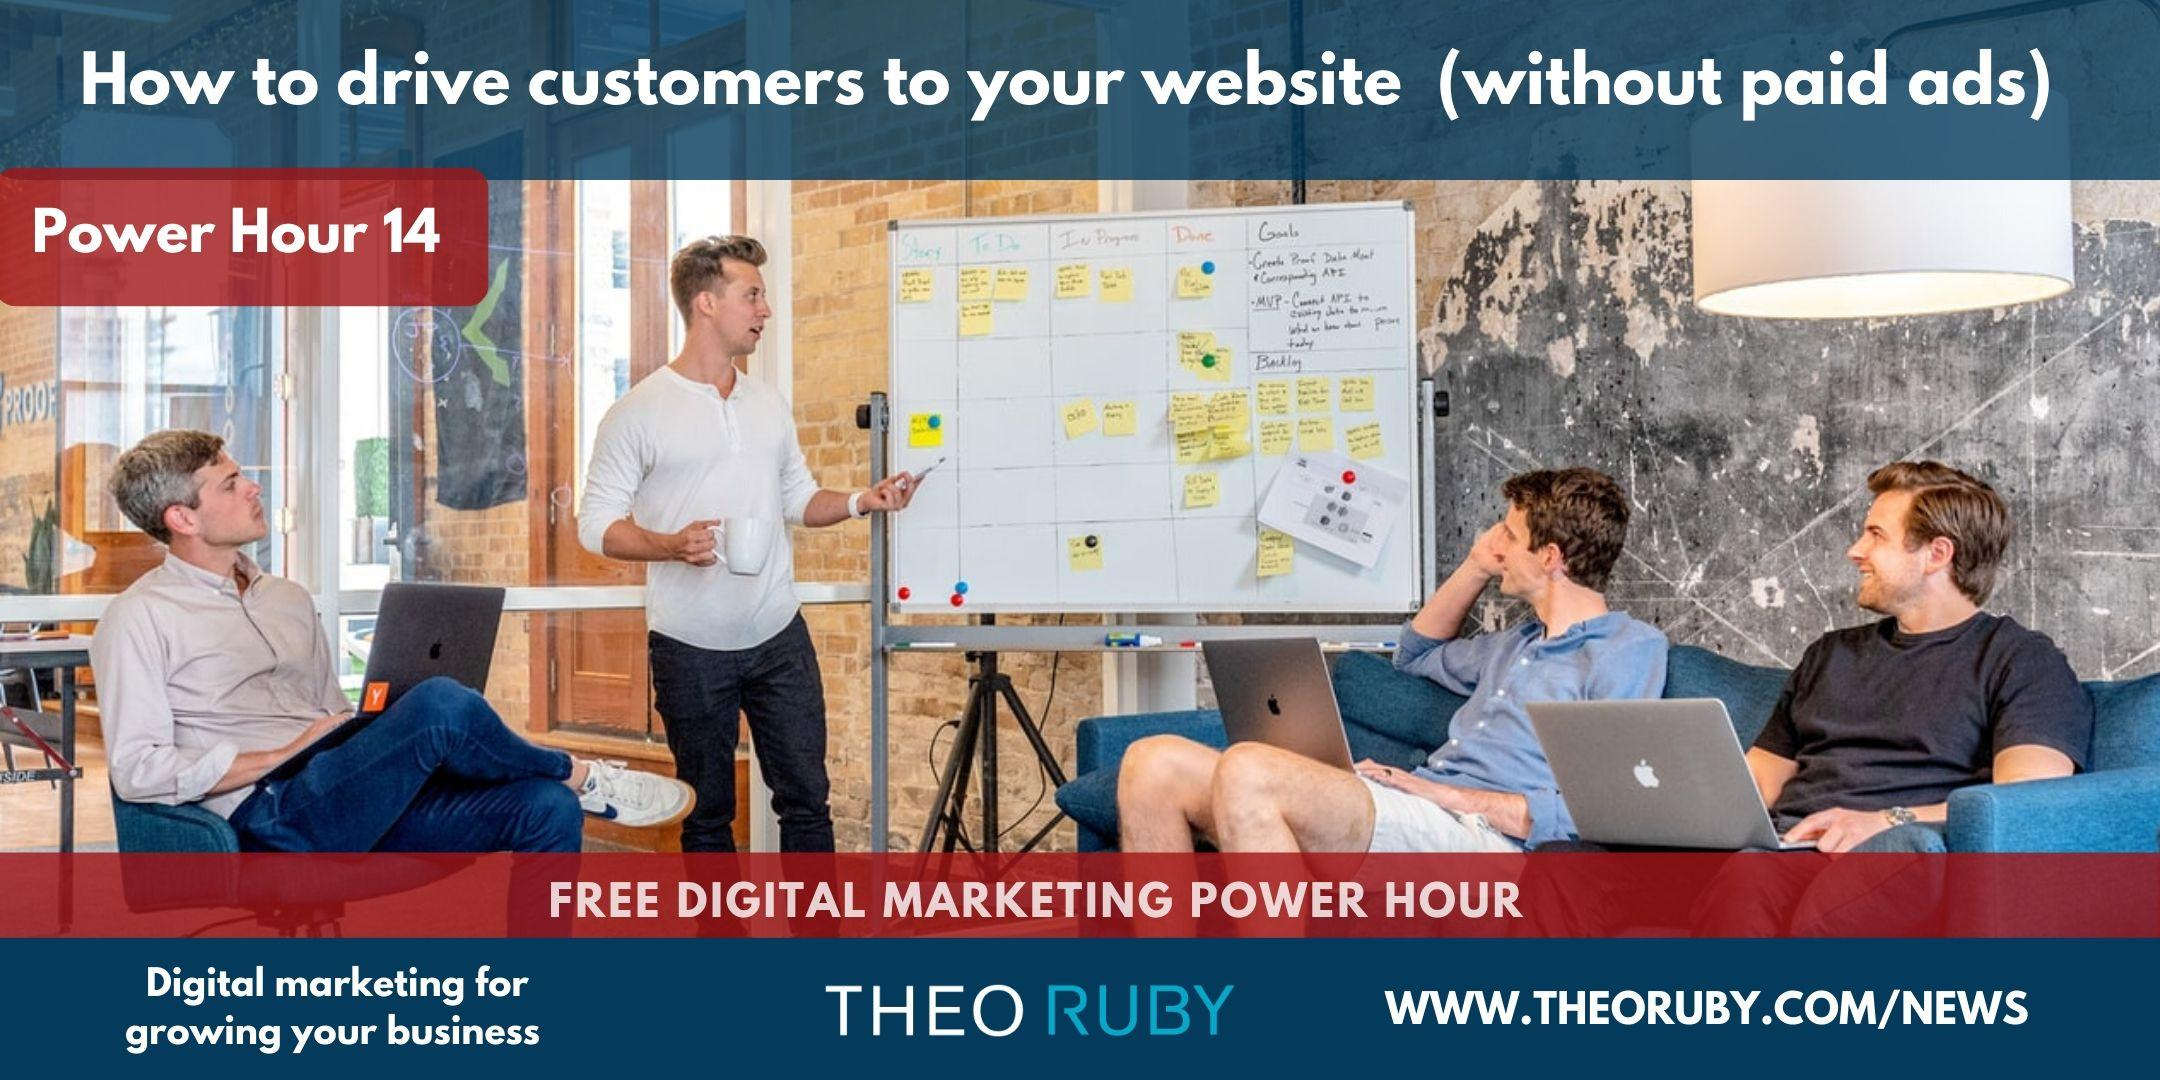 Power Hour 14 | How to drive customers to your website (without paid ads) 1